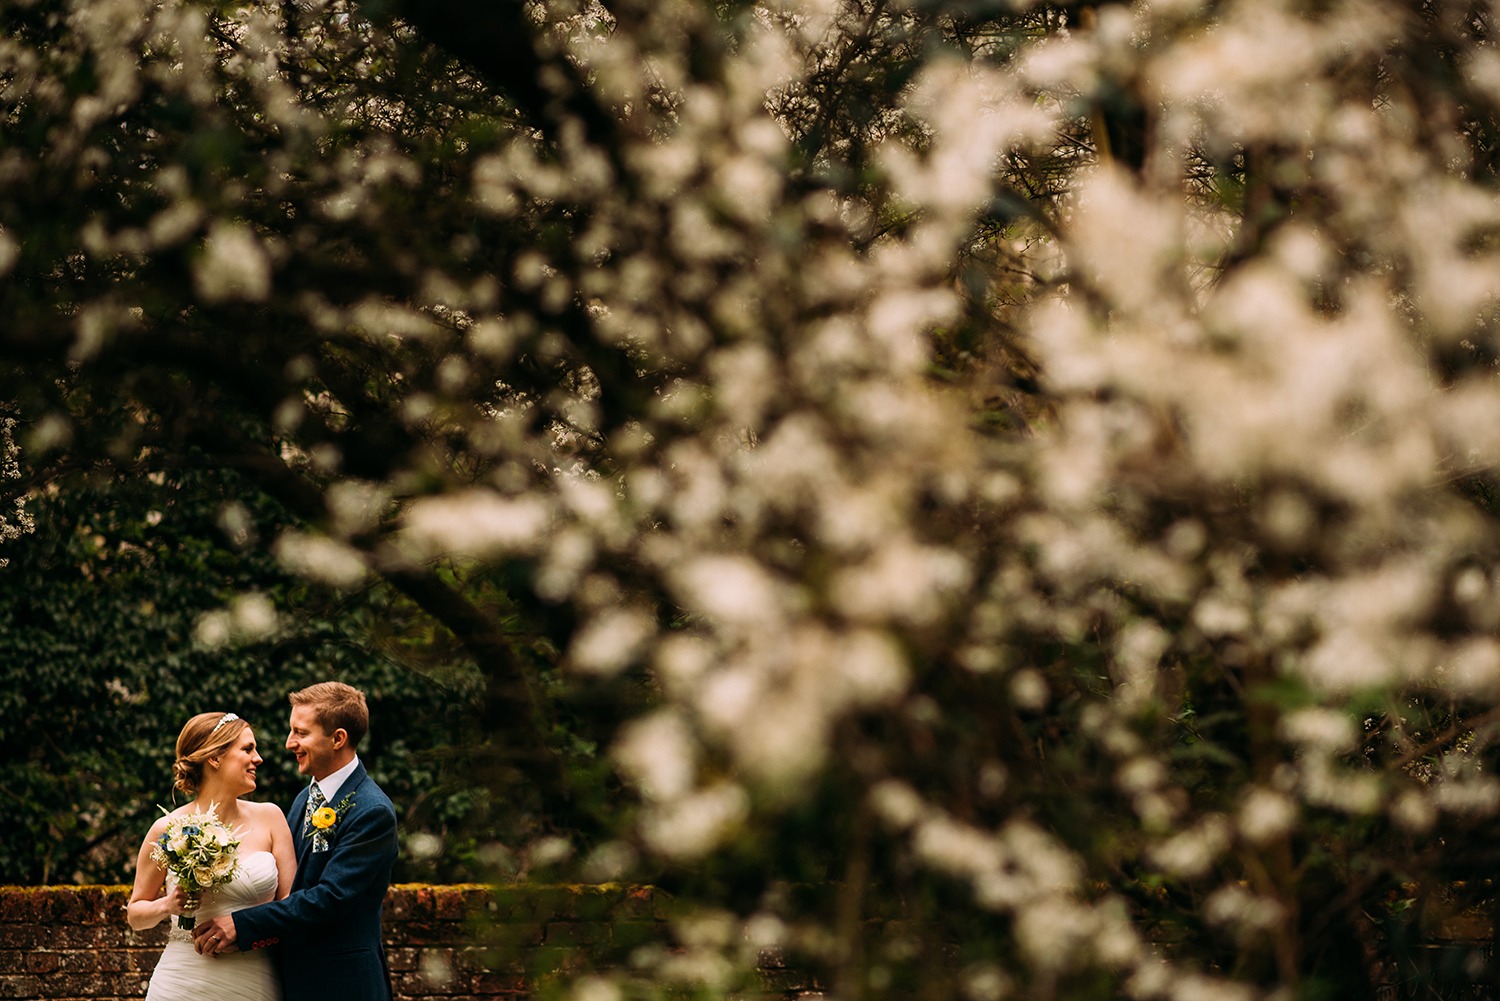 couple photo in the bottom left corner surrounded by white flowers from the tree